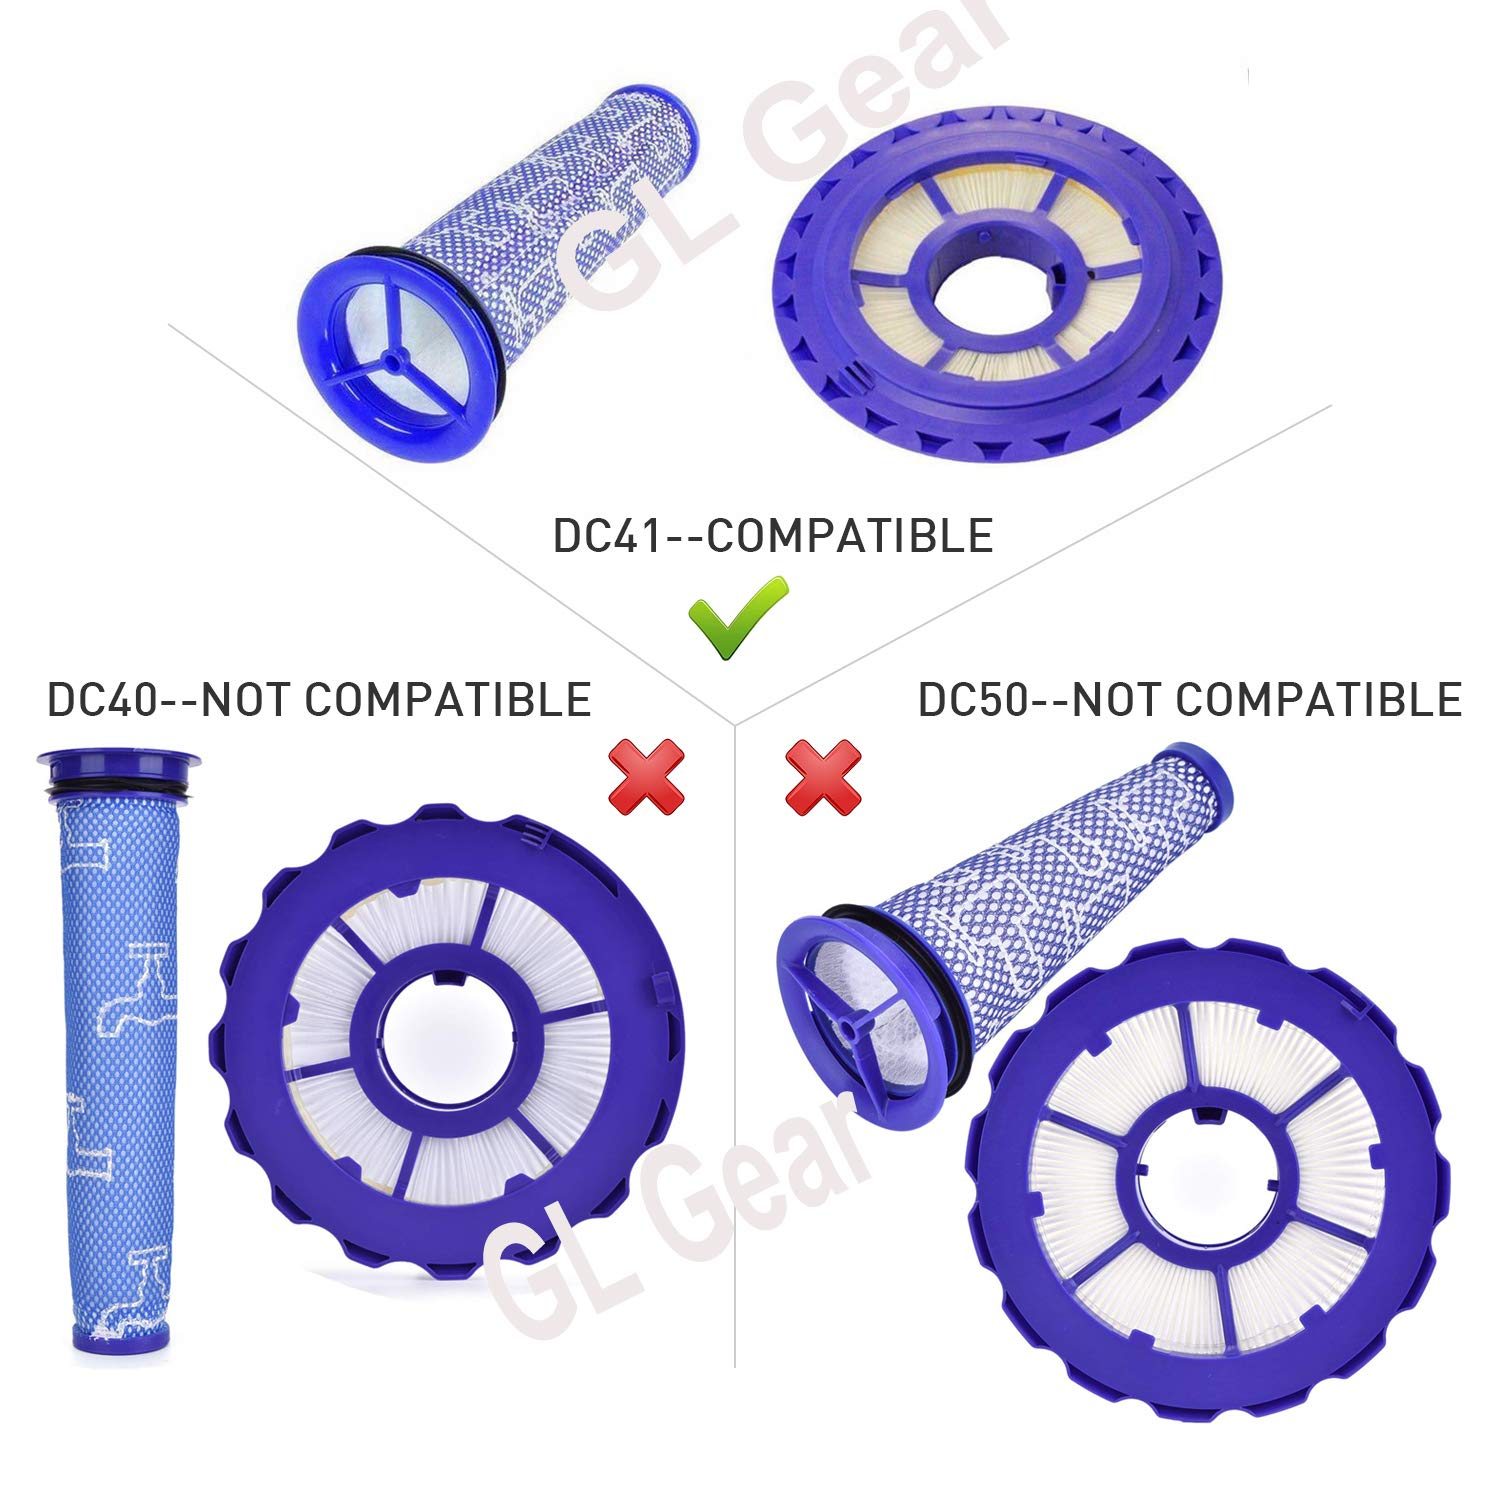 GL Gear Dyson DC41 Filter Replacement Parts # 920769-01 & 920640-01,Compatible HEPA Post Filter & Pre Filter Dyson DC65 DC66 Animal